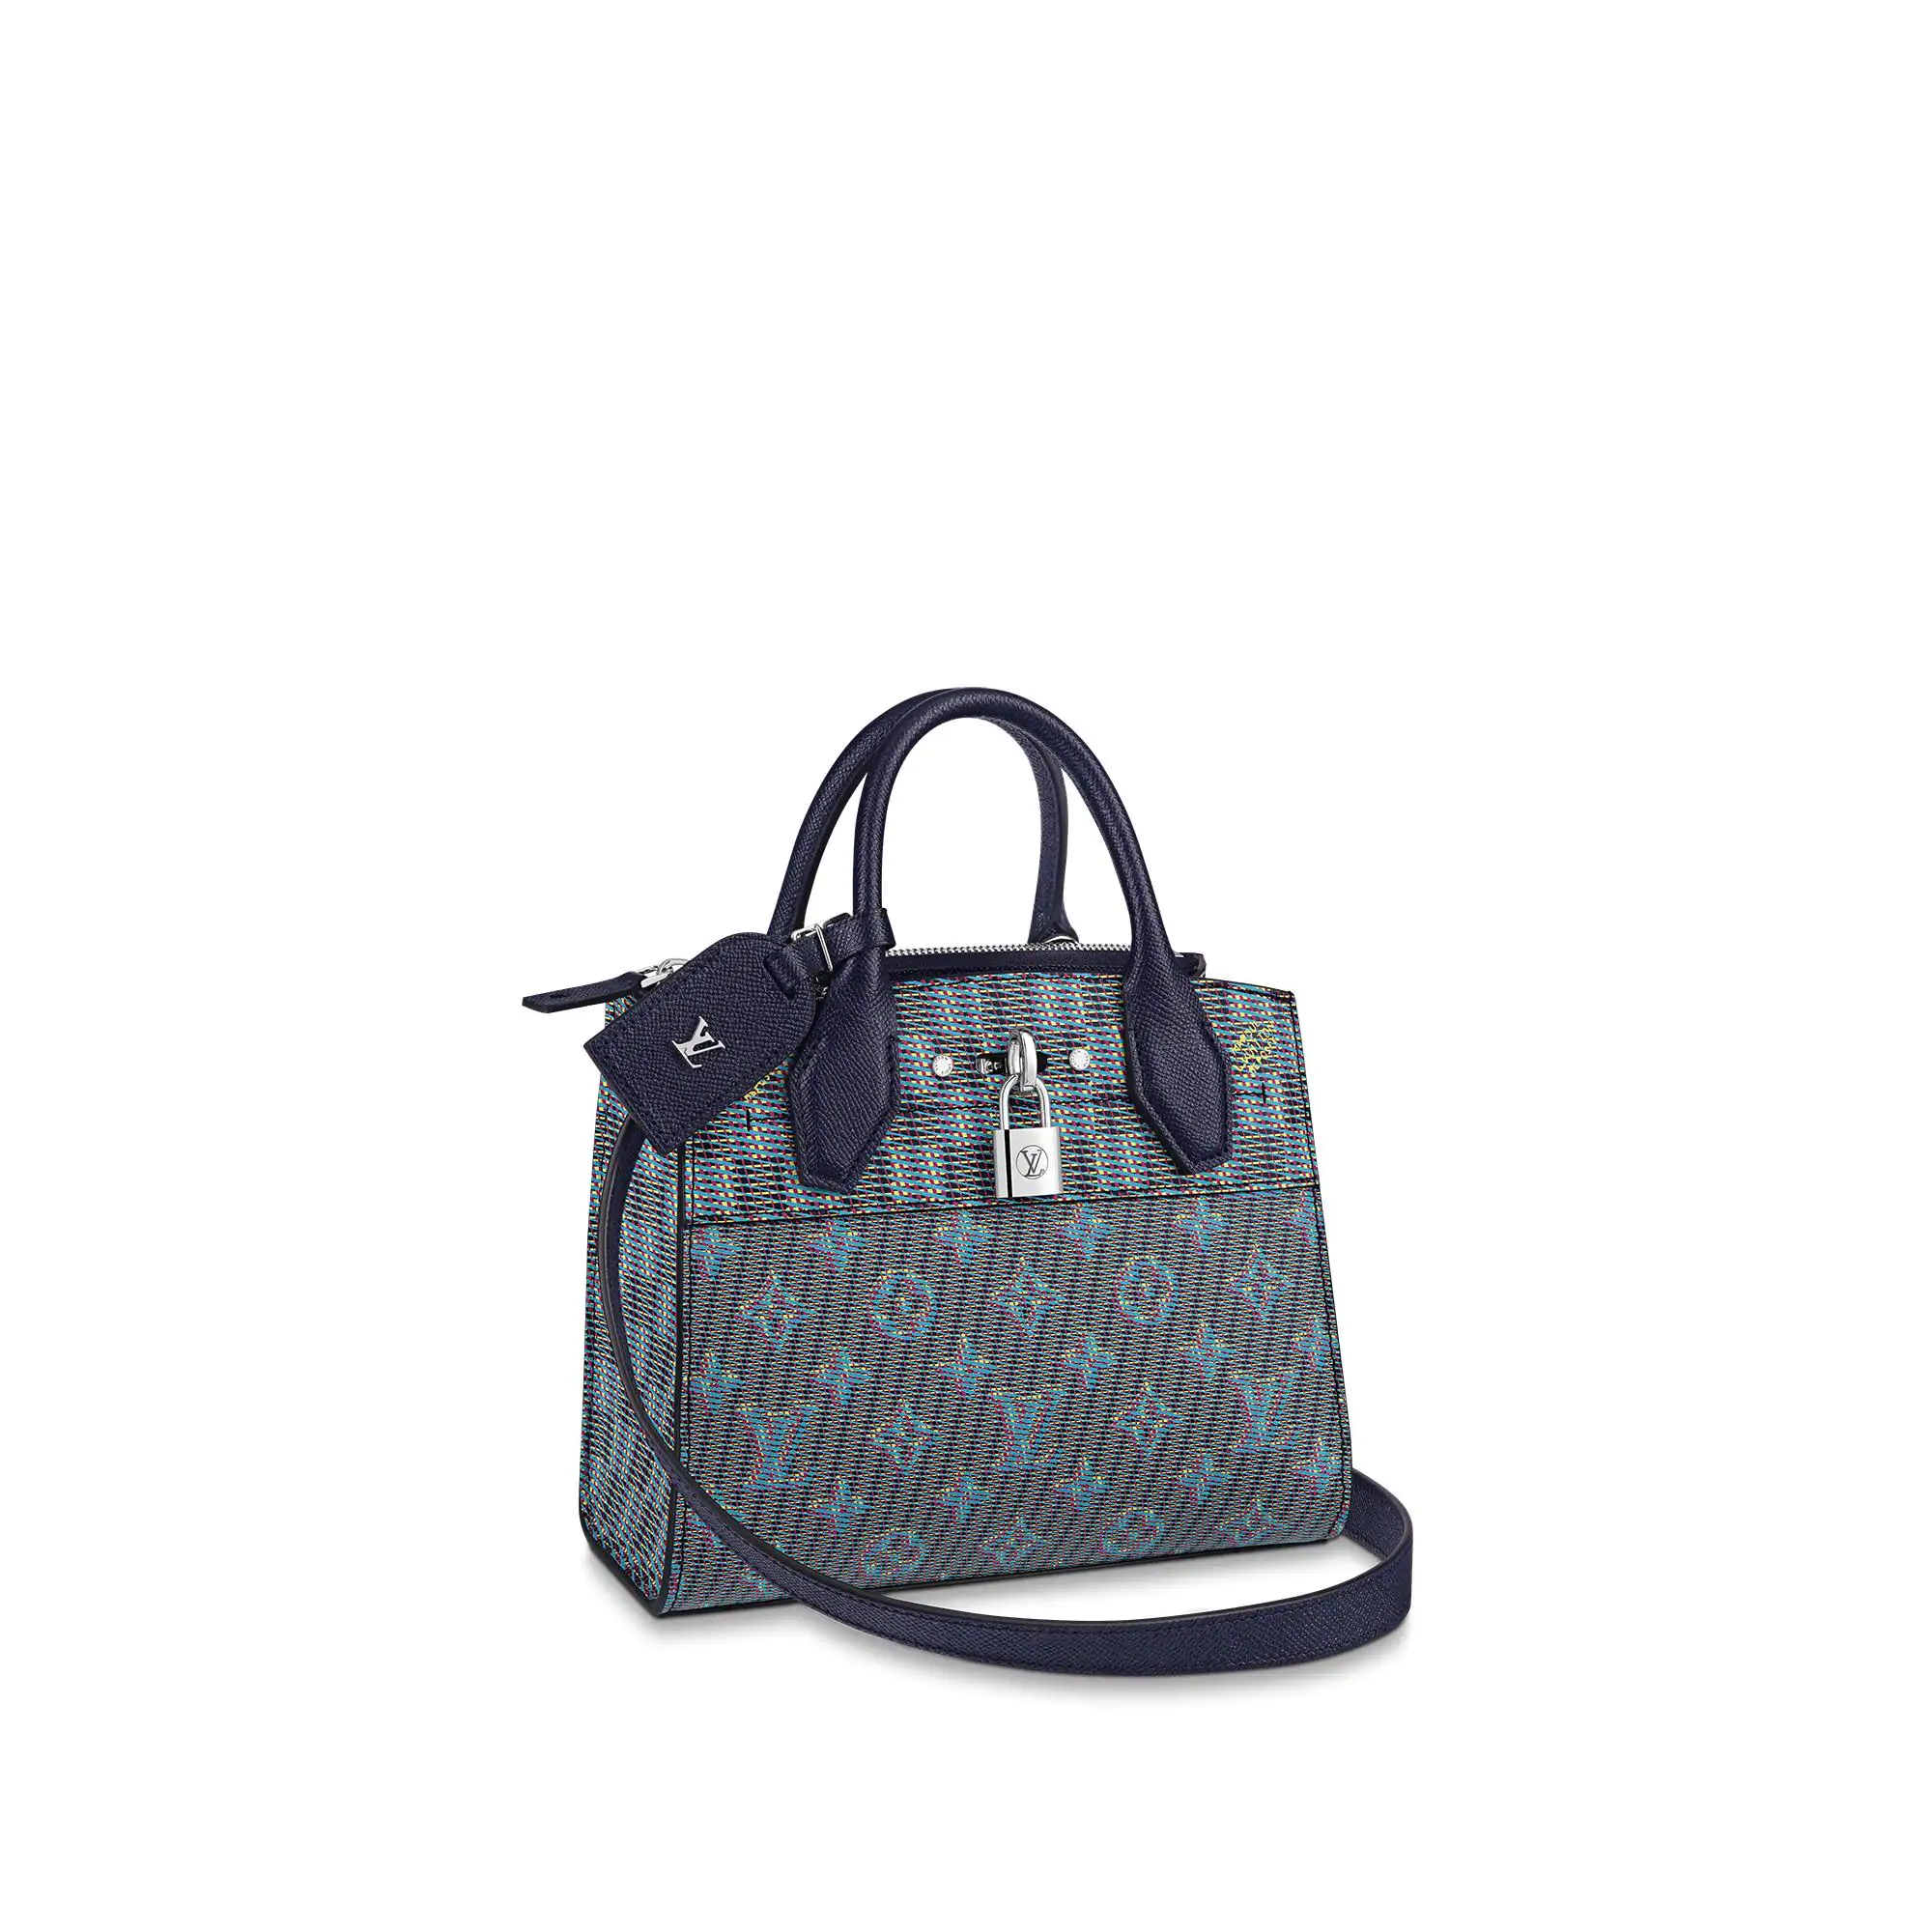 Louis Vuitton Monogram Pop City Steamer PM Top handle Bag M55469 Blue